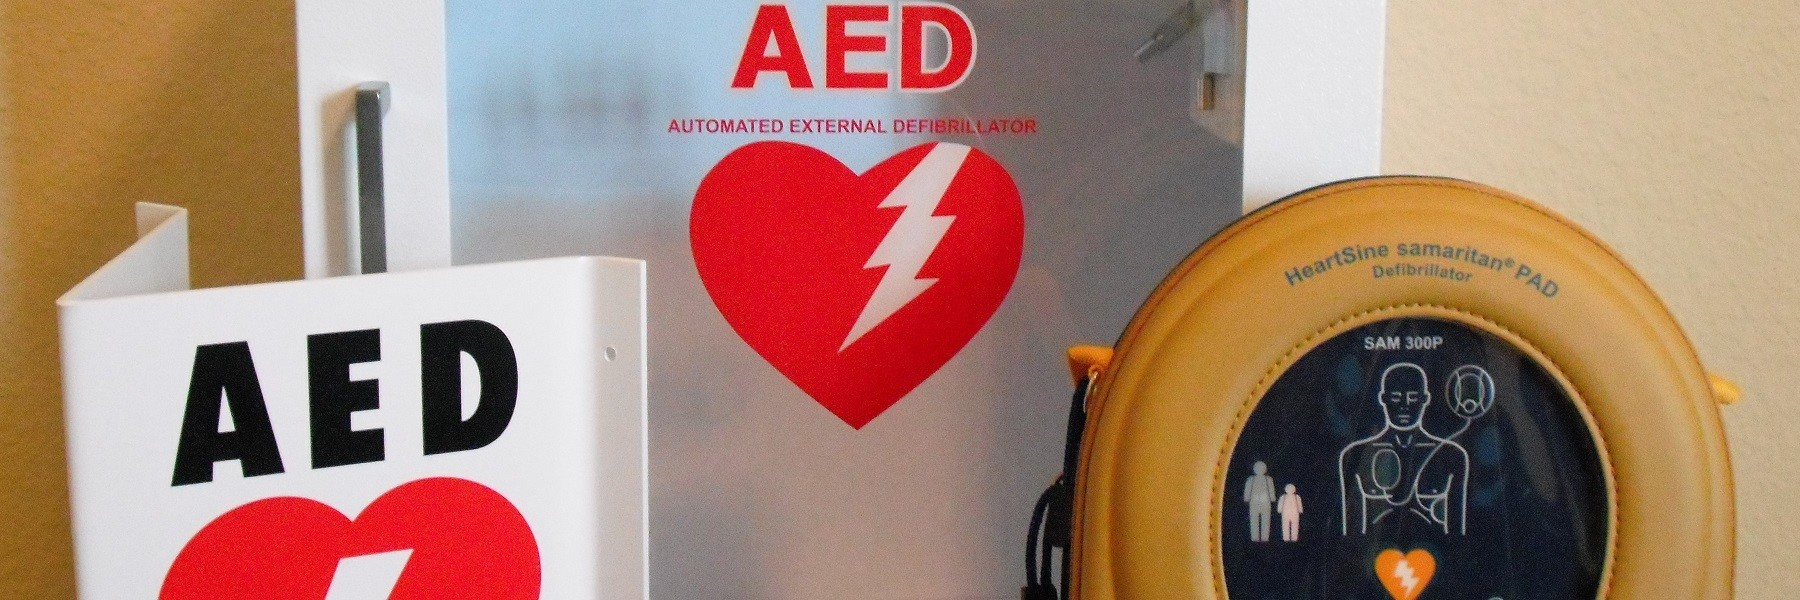 HeartSine AED Package